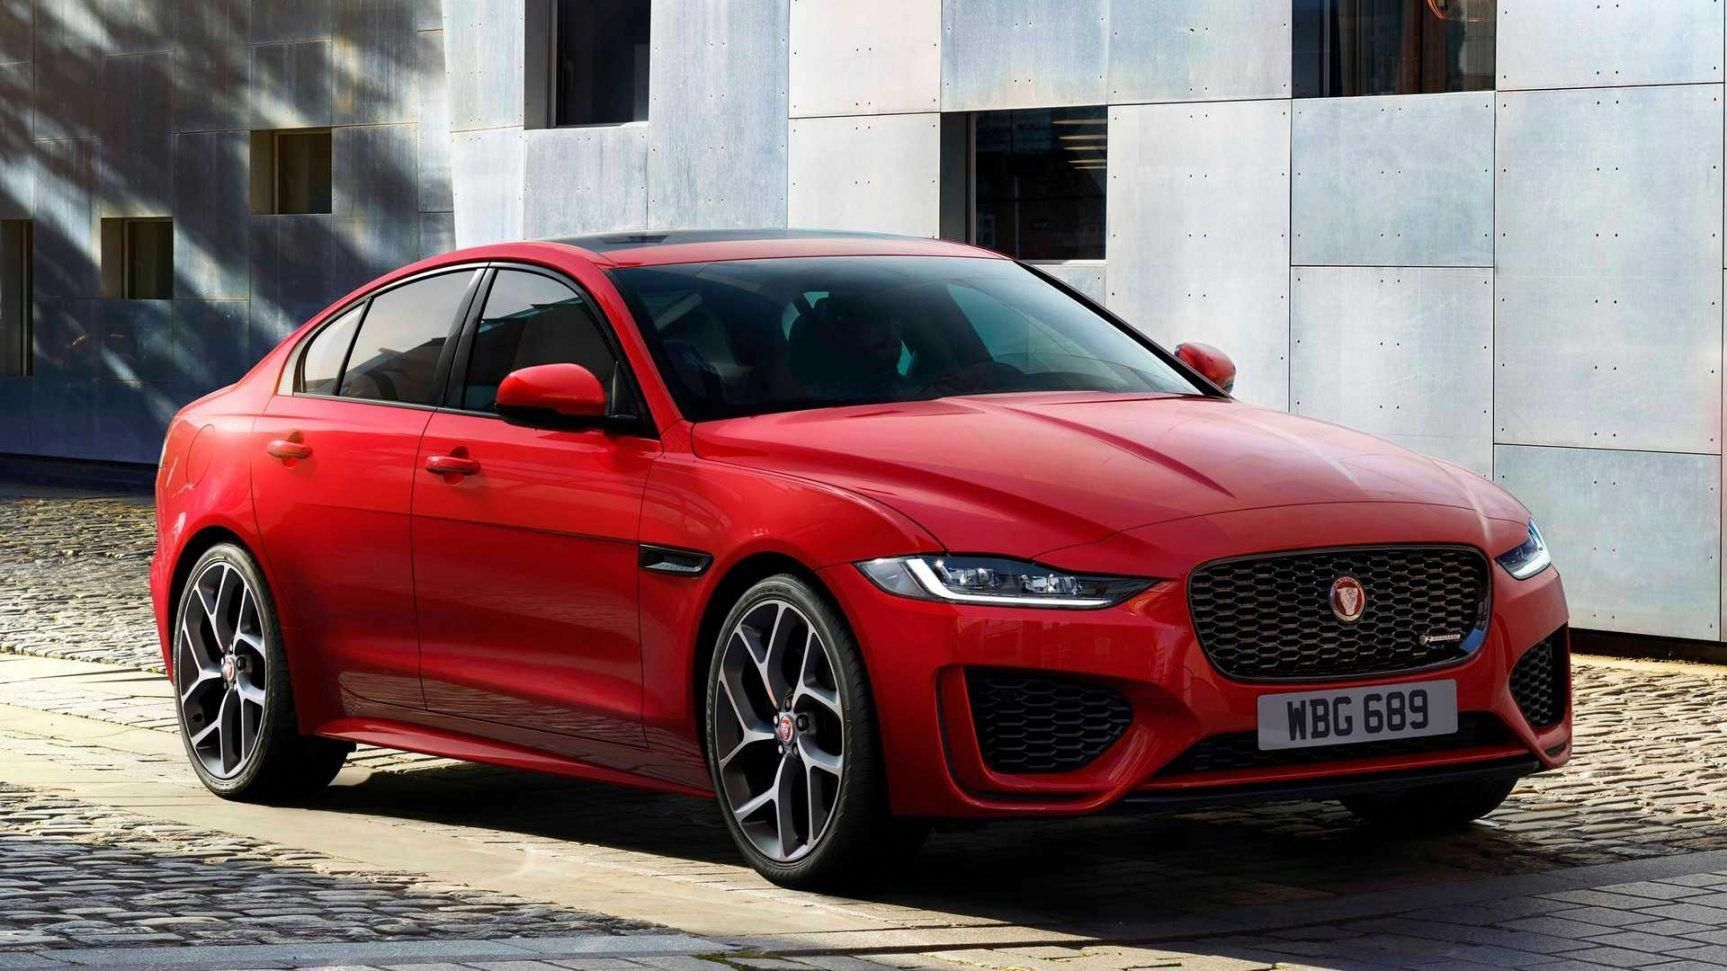 2020 Jaguar Xe Review Engine Features Interior Exterior And Photos Jaguar Xe New Jaguar Jaguar Price